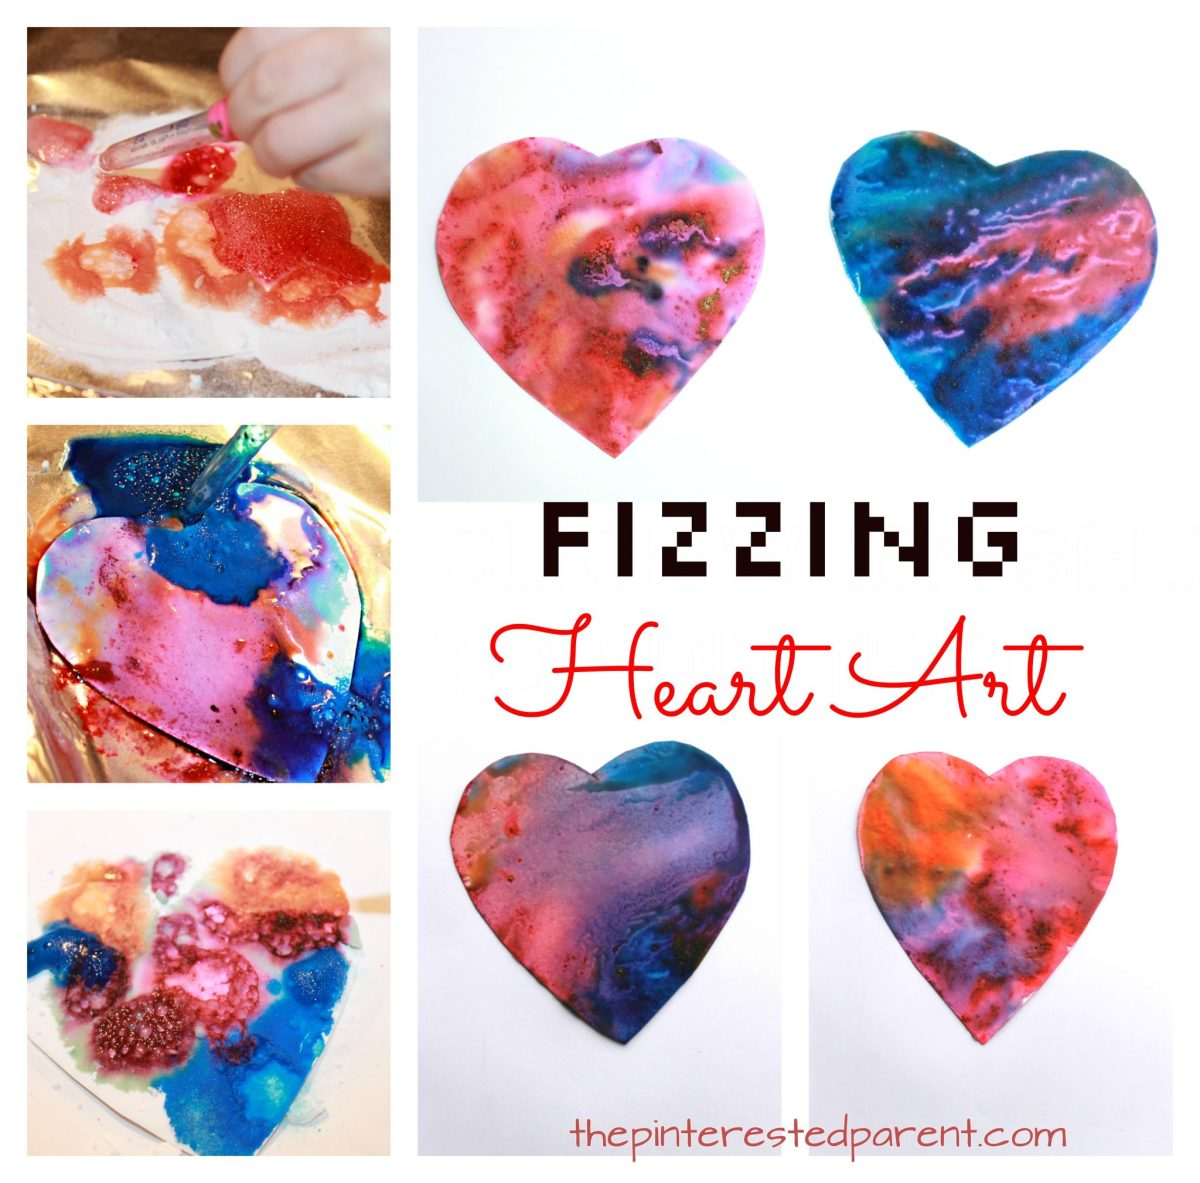 Fizzing Heart Art Eruptions